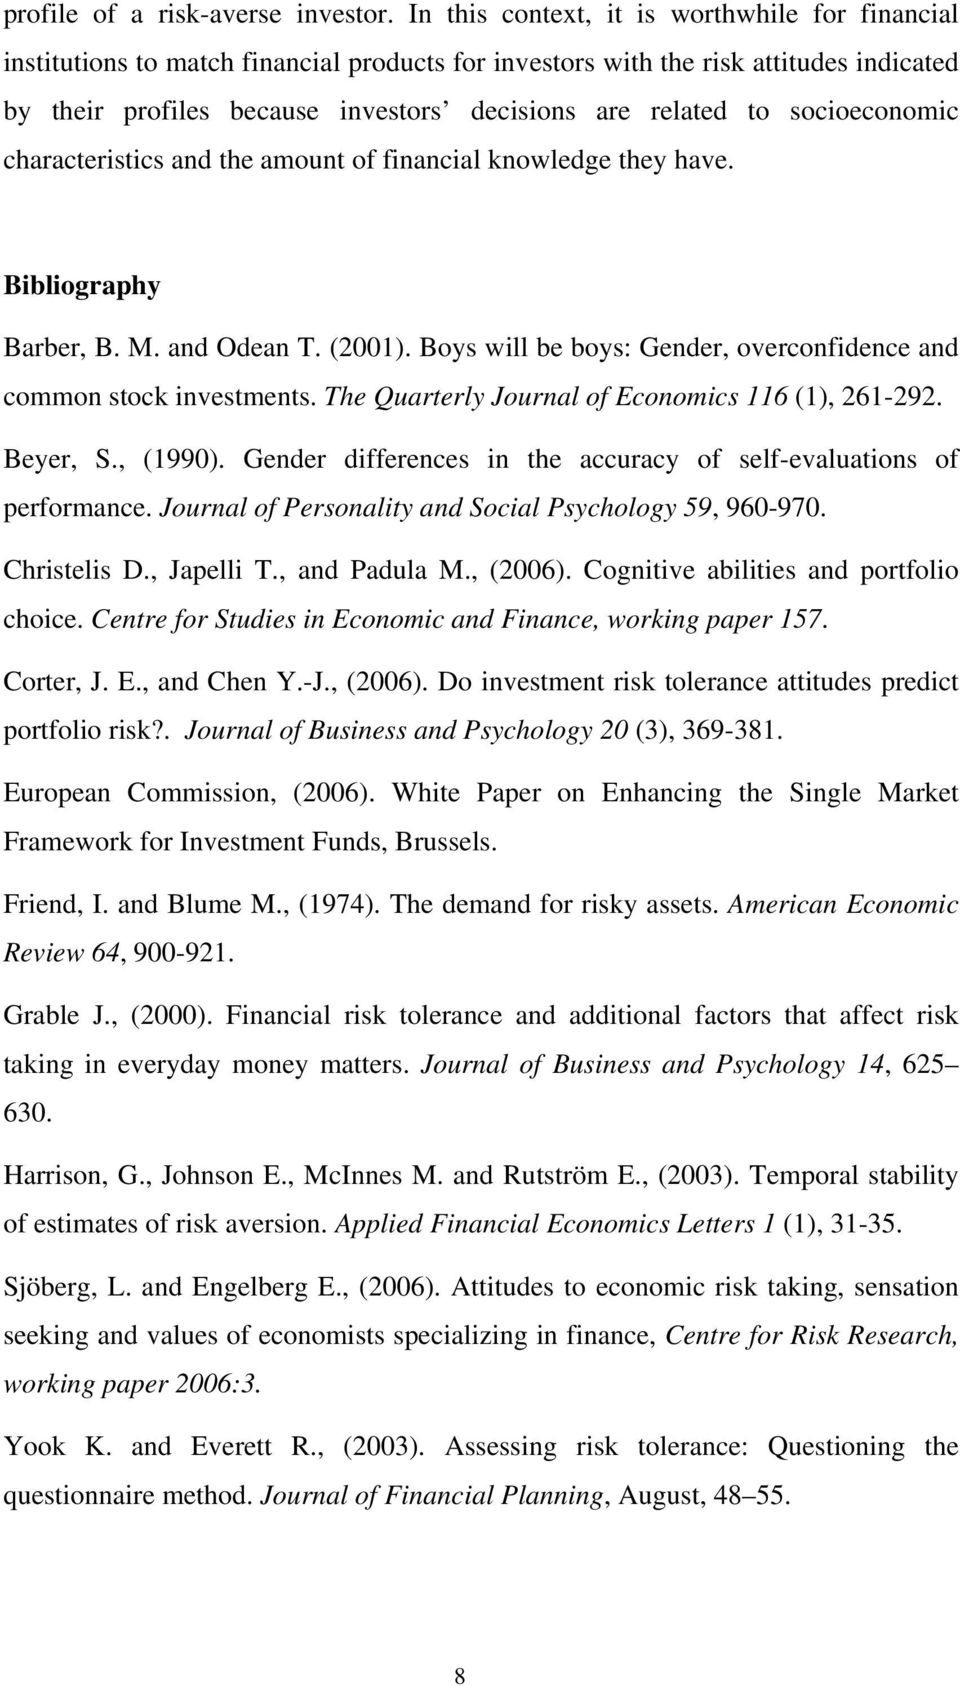 socioeconomic characteristics and the amount of financial knowledge they have. Bibliography Barber, B. M. and Odean T. (2001). Boys will be boys: Gender, overconfidence and common stock investments.